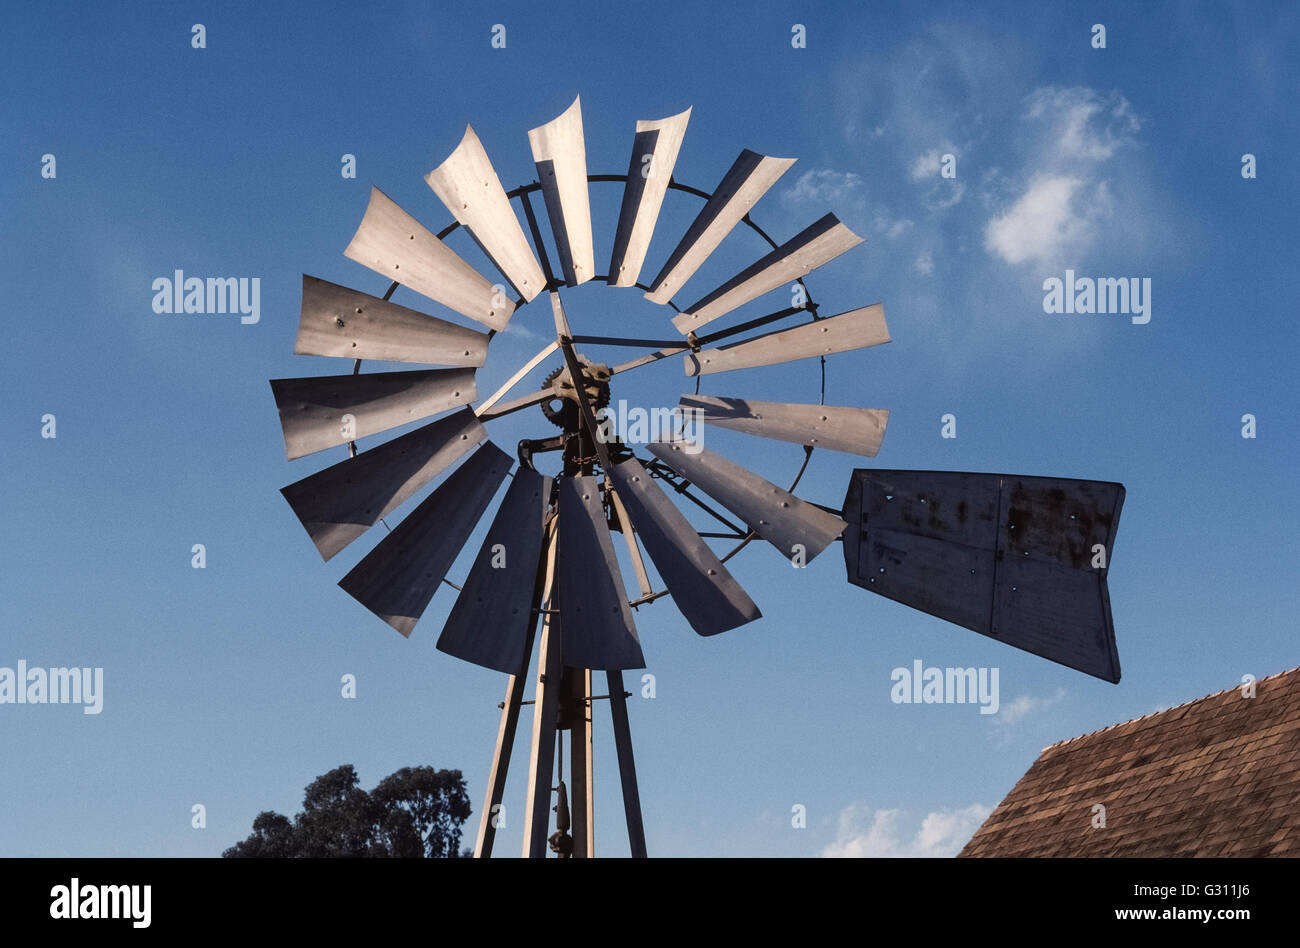 The metal blades and tail vane of a farm windmill that pumps water from the ground are seen close up alongside a - Stock Image